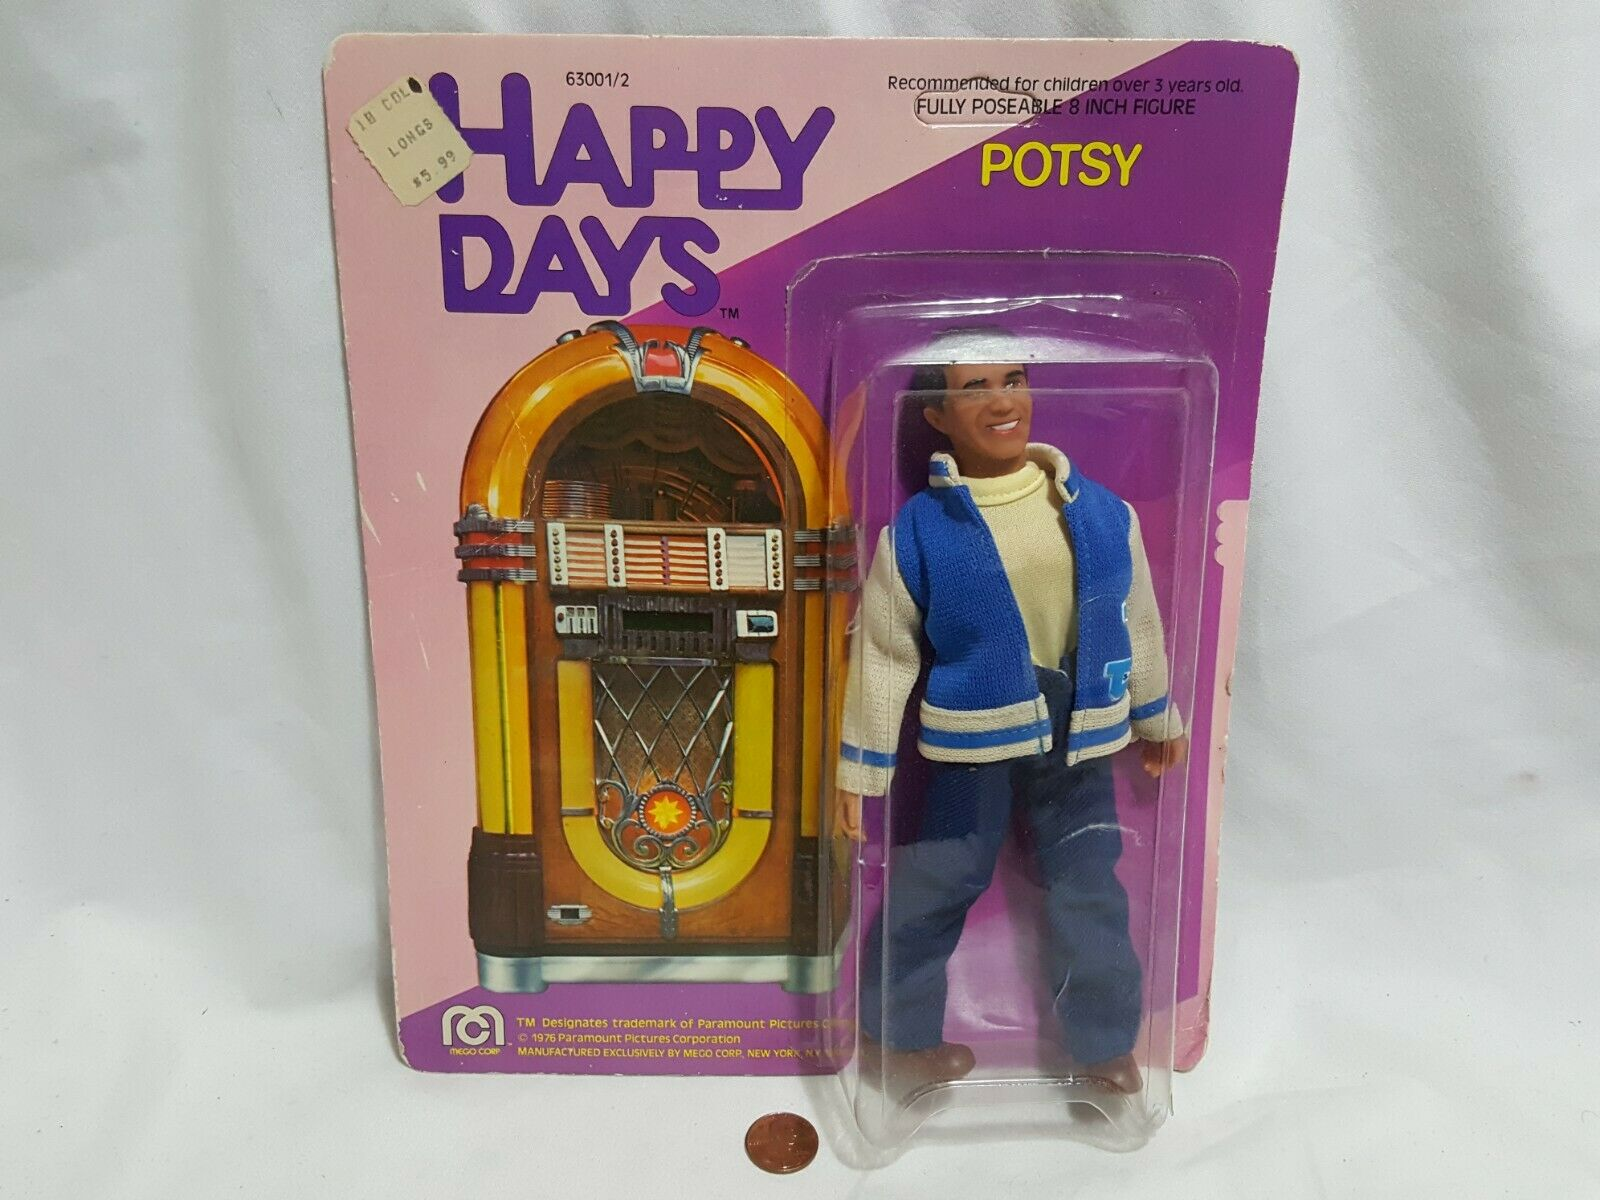 nuovo Read Happy Days Potsy Poseable 8 cifra SEALED 1976 Mego giocattolo potsie weber